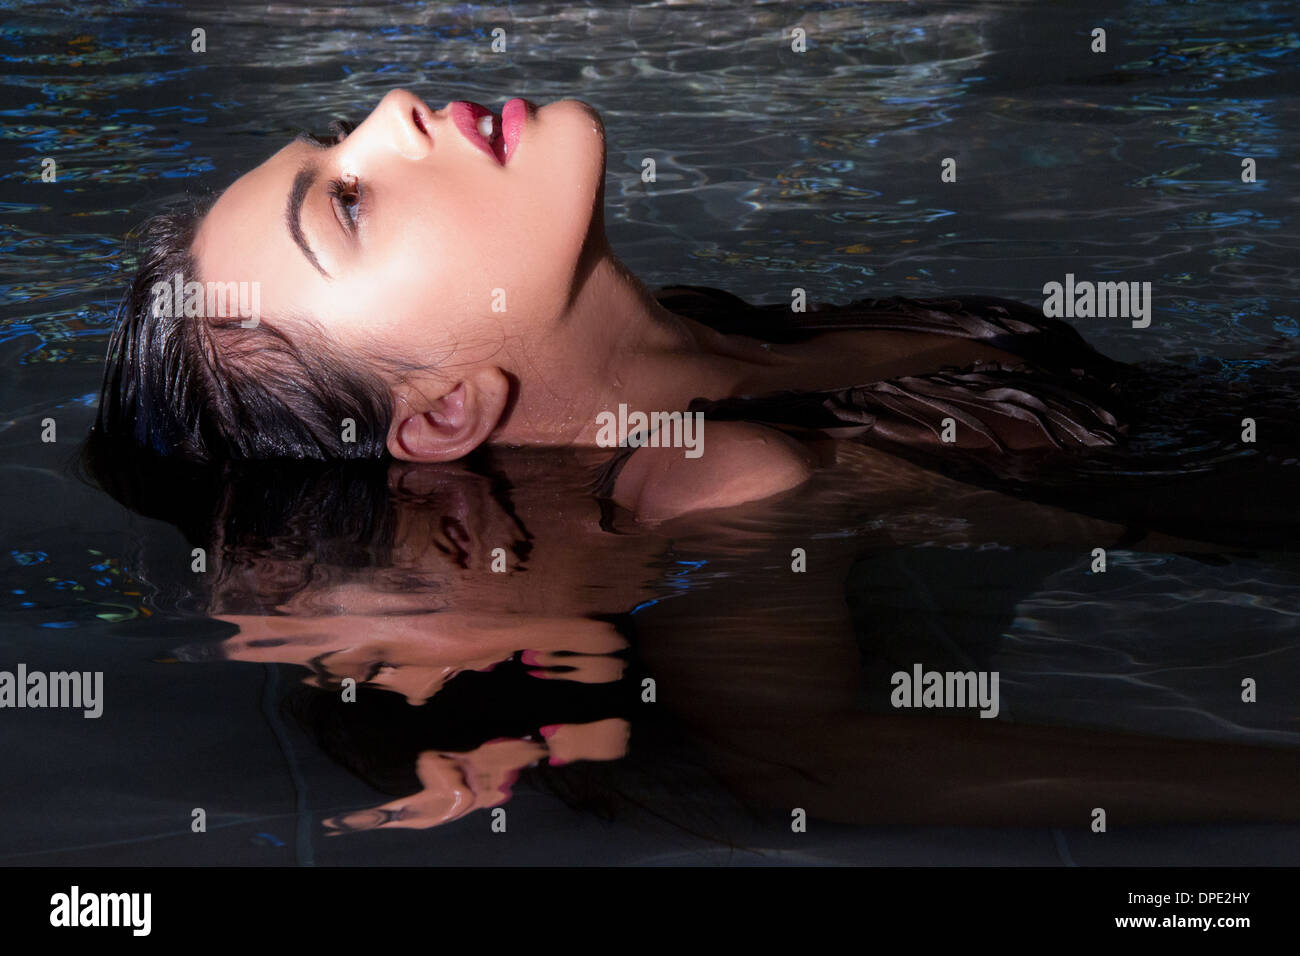 Young woman relaxing in spa swimming pool - Stock Image